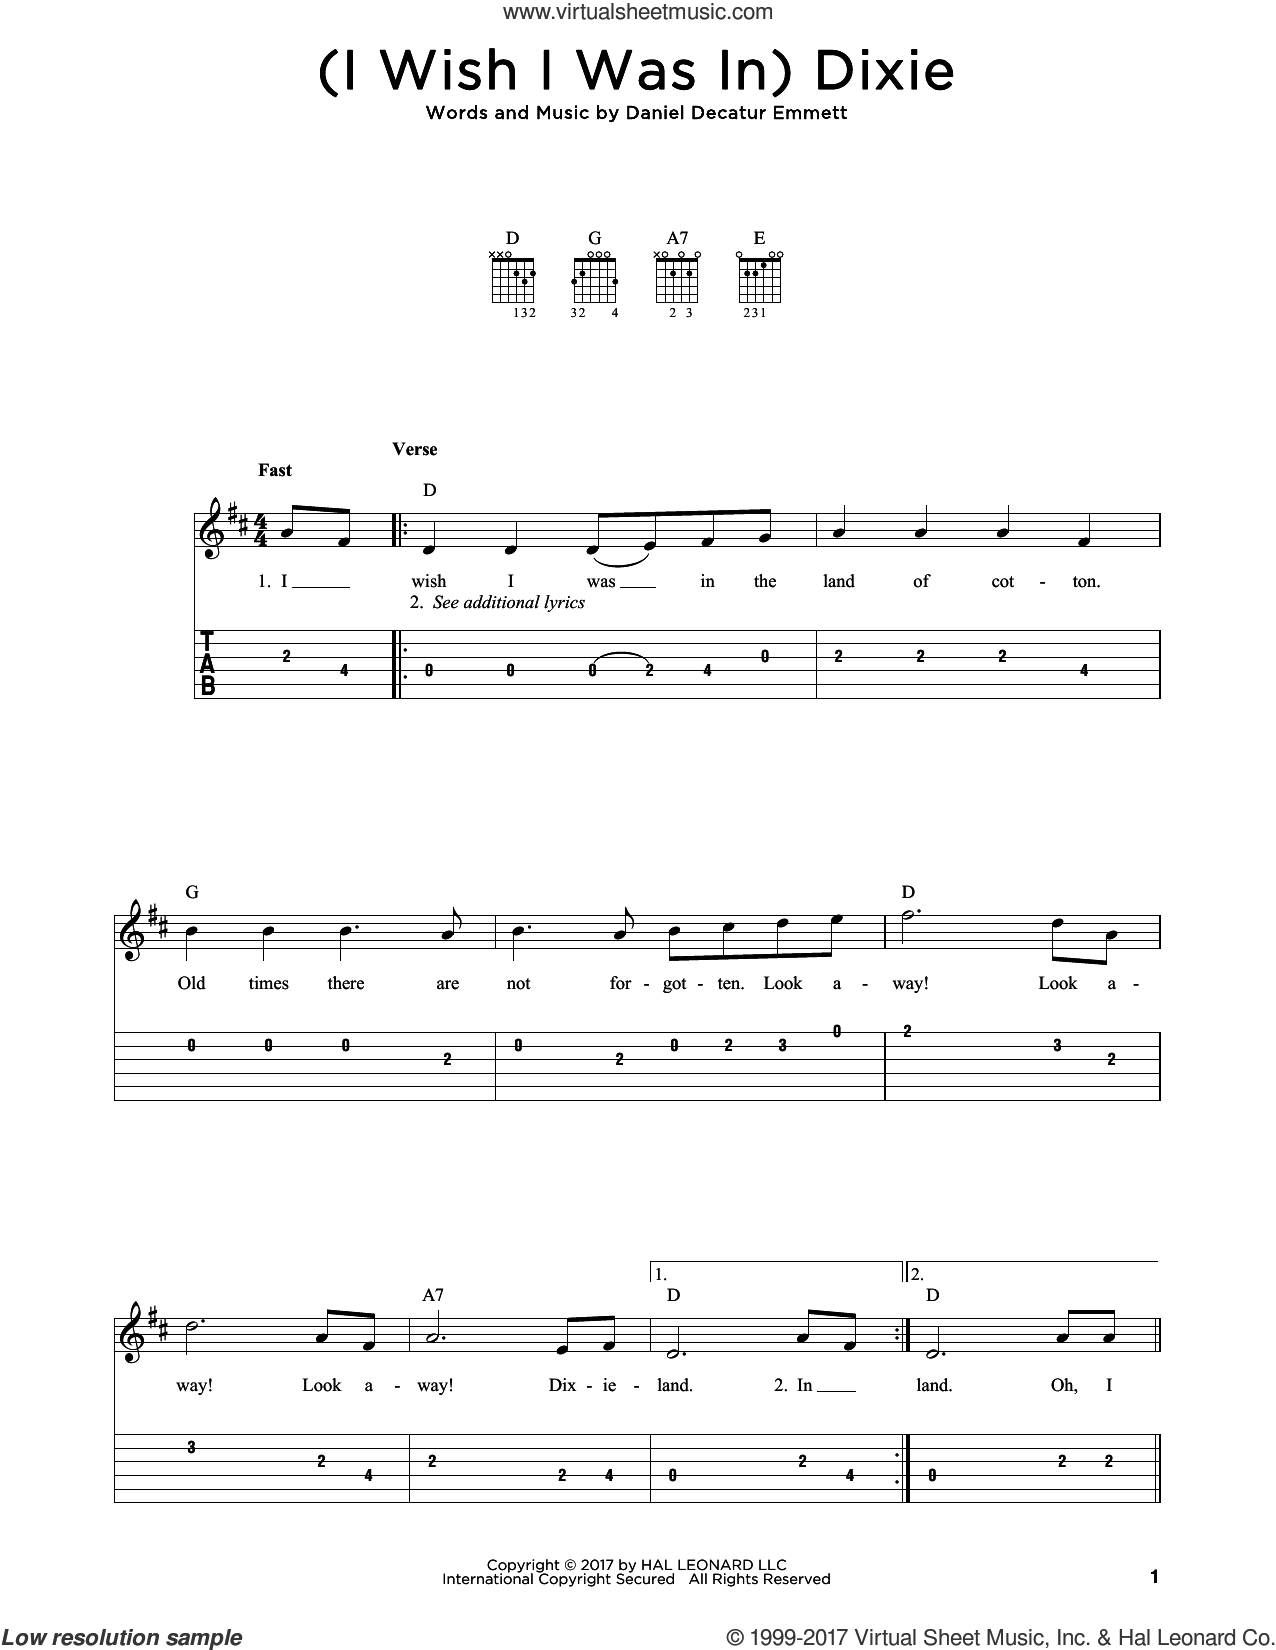 (I Wish I Was In) Dixie sheet music for guitar solo by Daniel Decatur Emmett, intermediate. Score Image Preview.